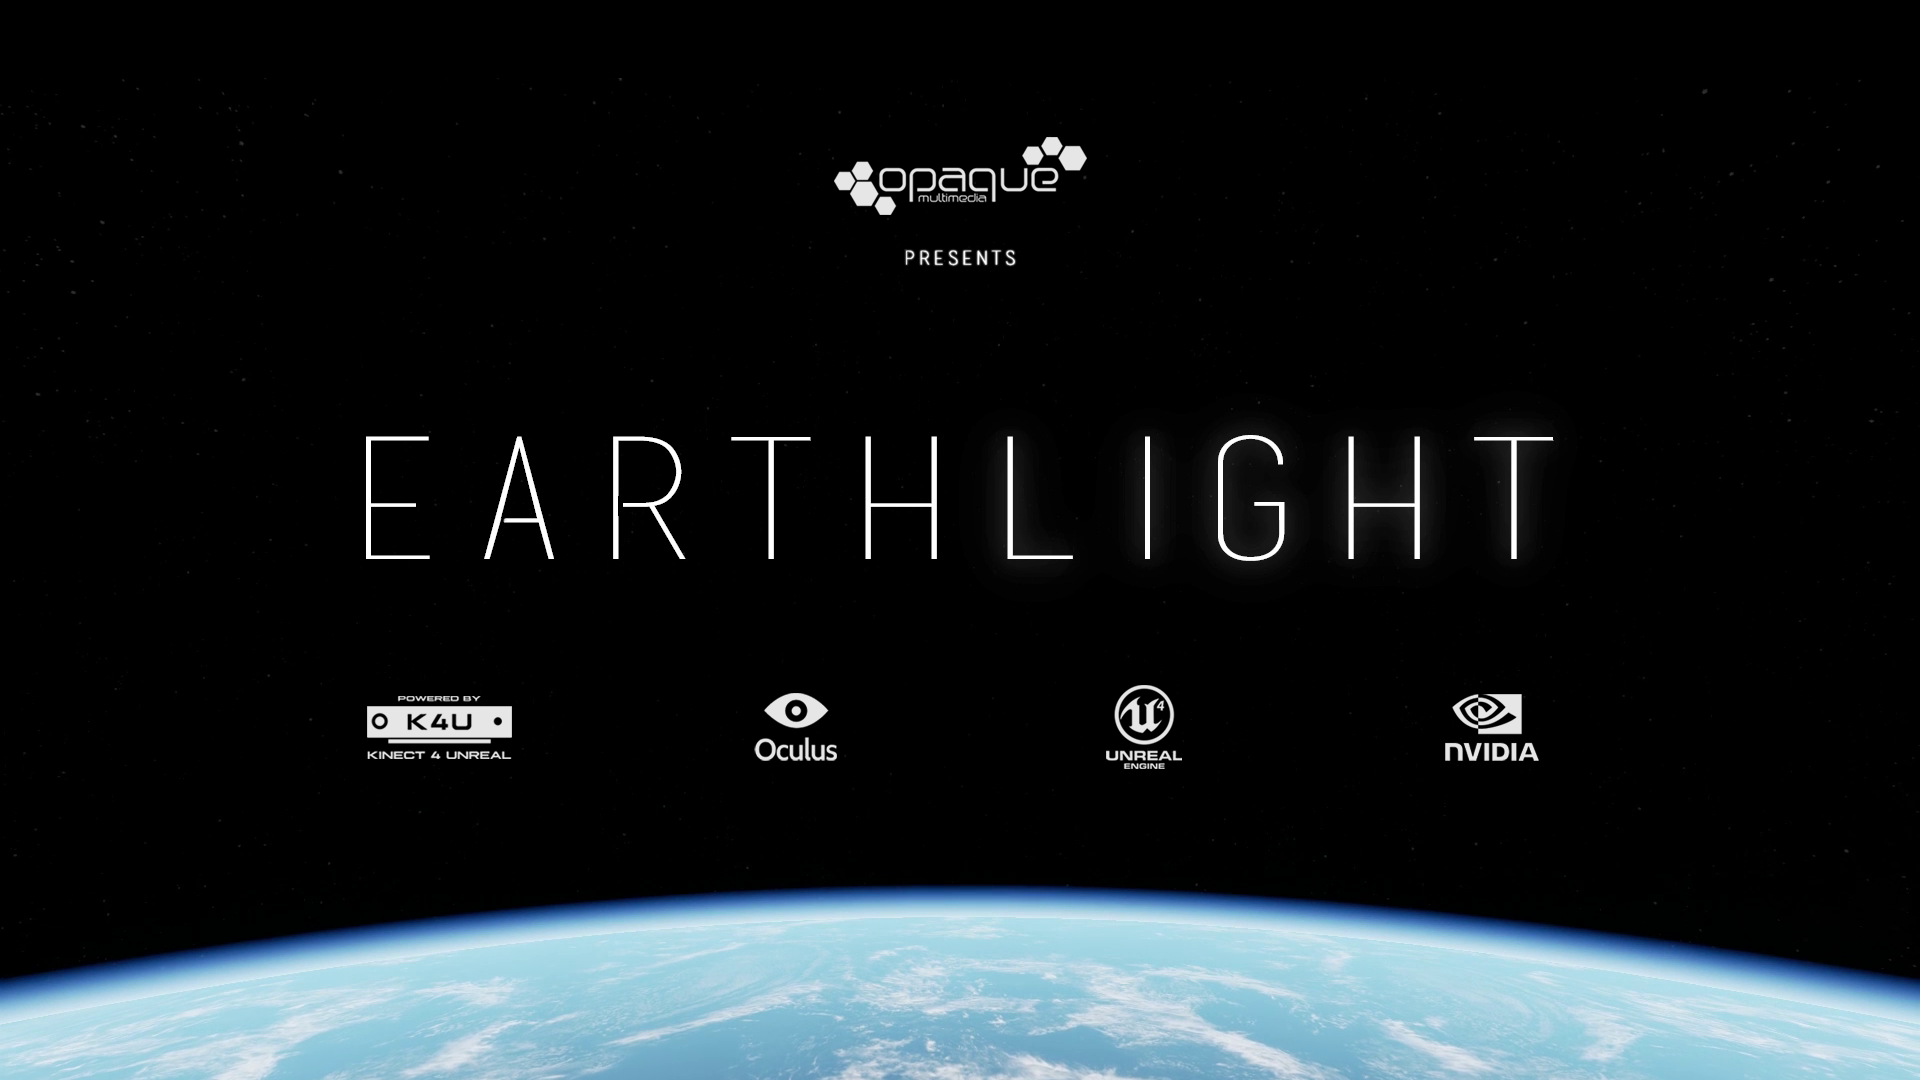 earthlight_splash